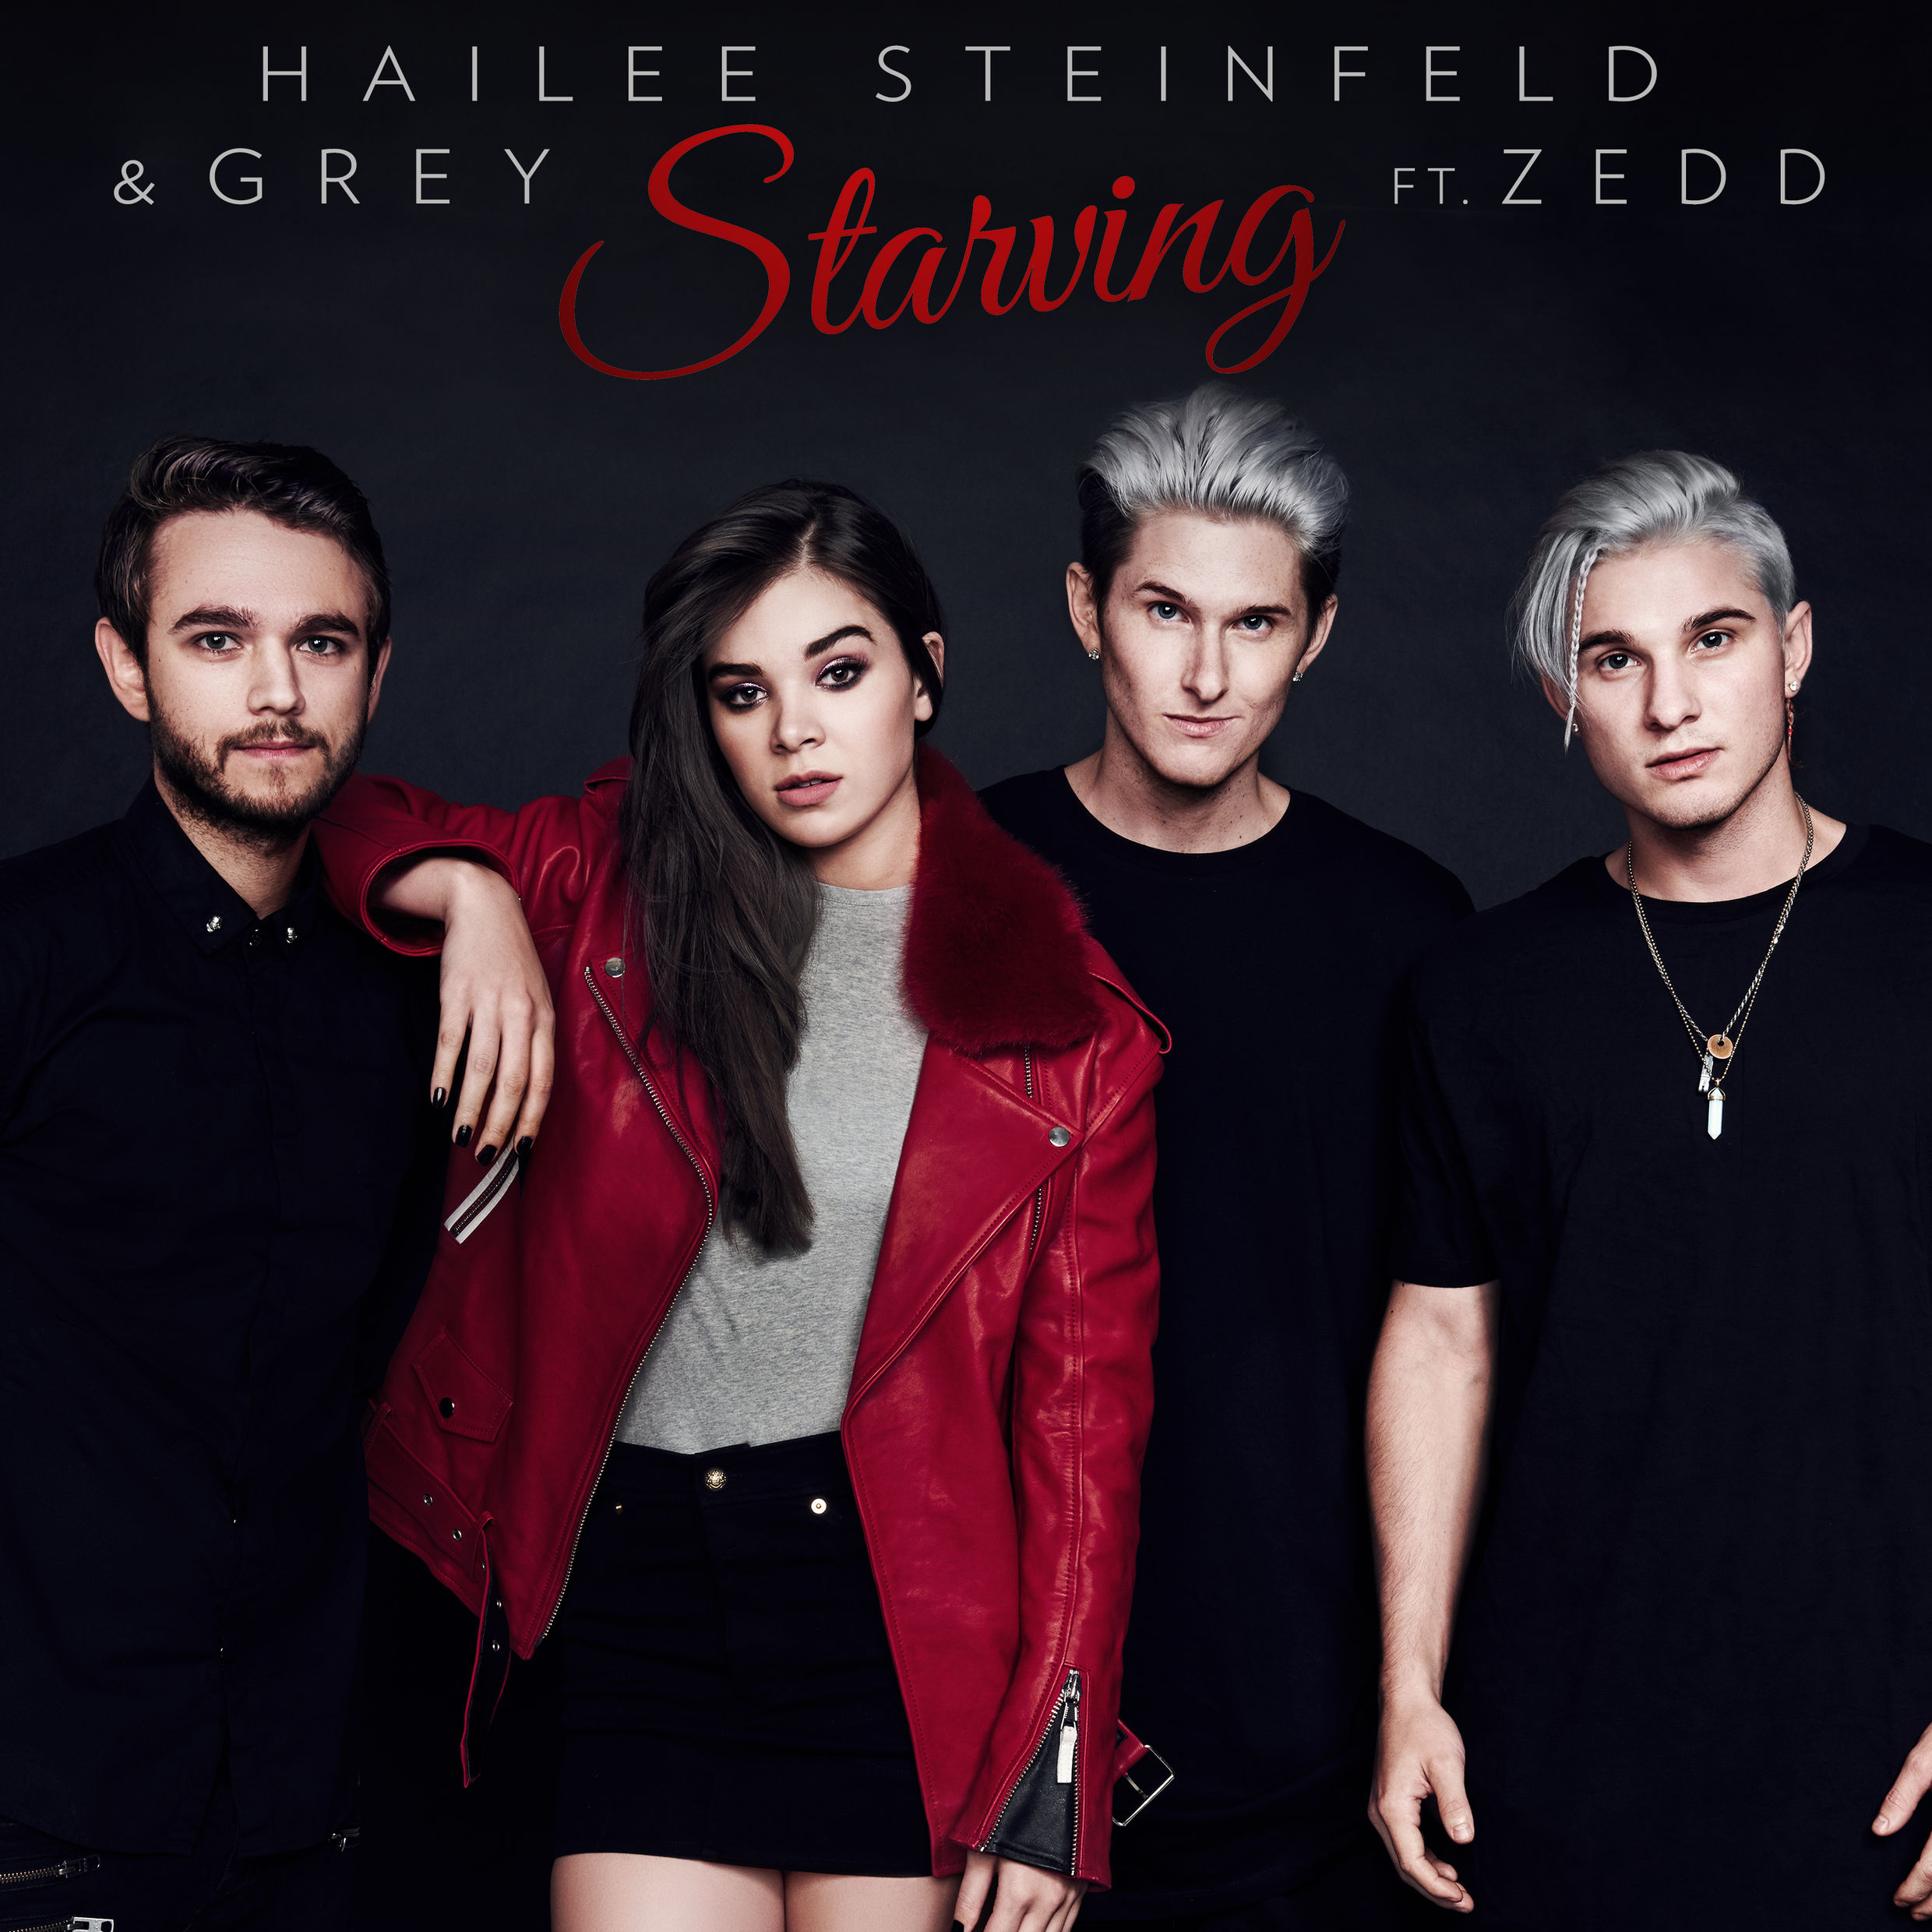 Hailee Steinfeld And Grey feat Zedd - Starving